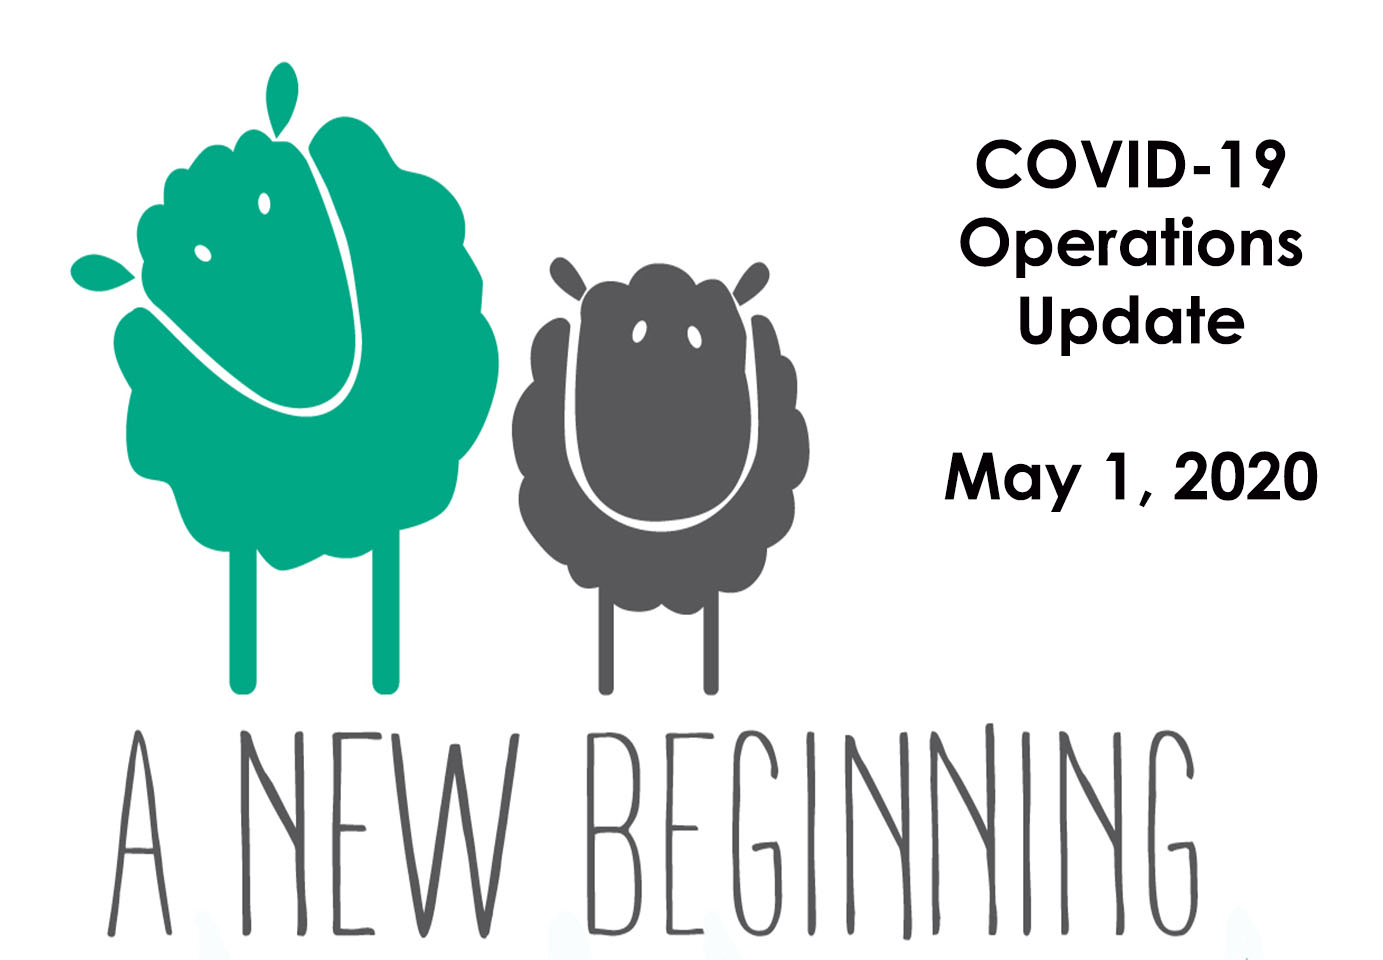 COVID-19 UPDATE May 1, 2020